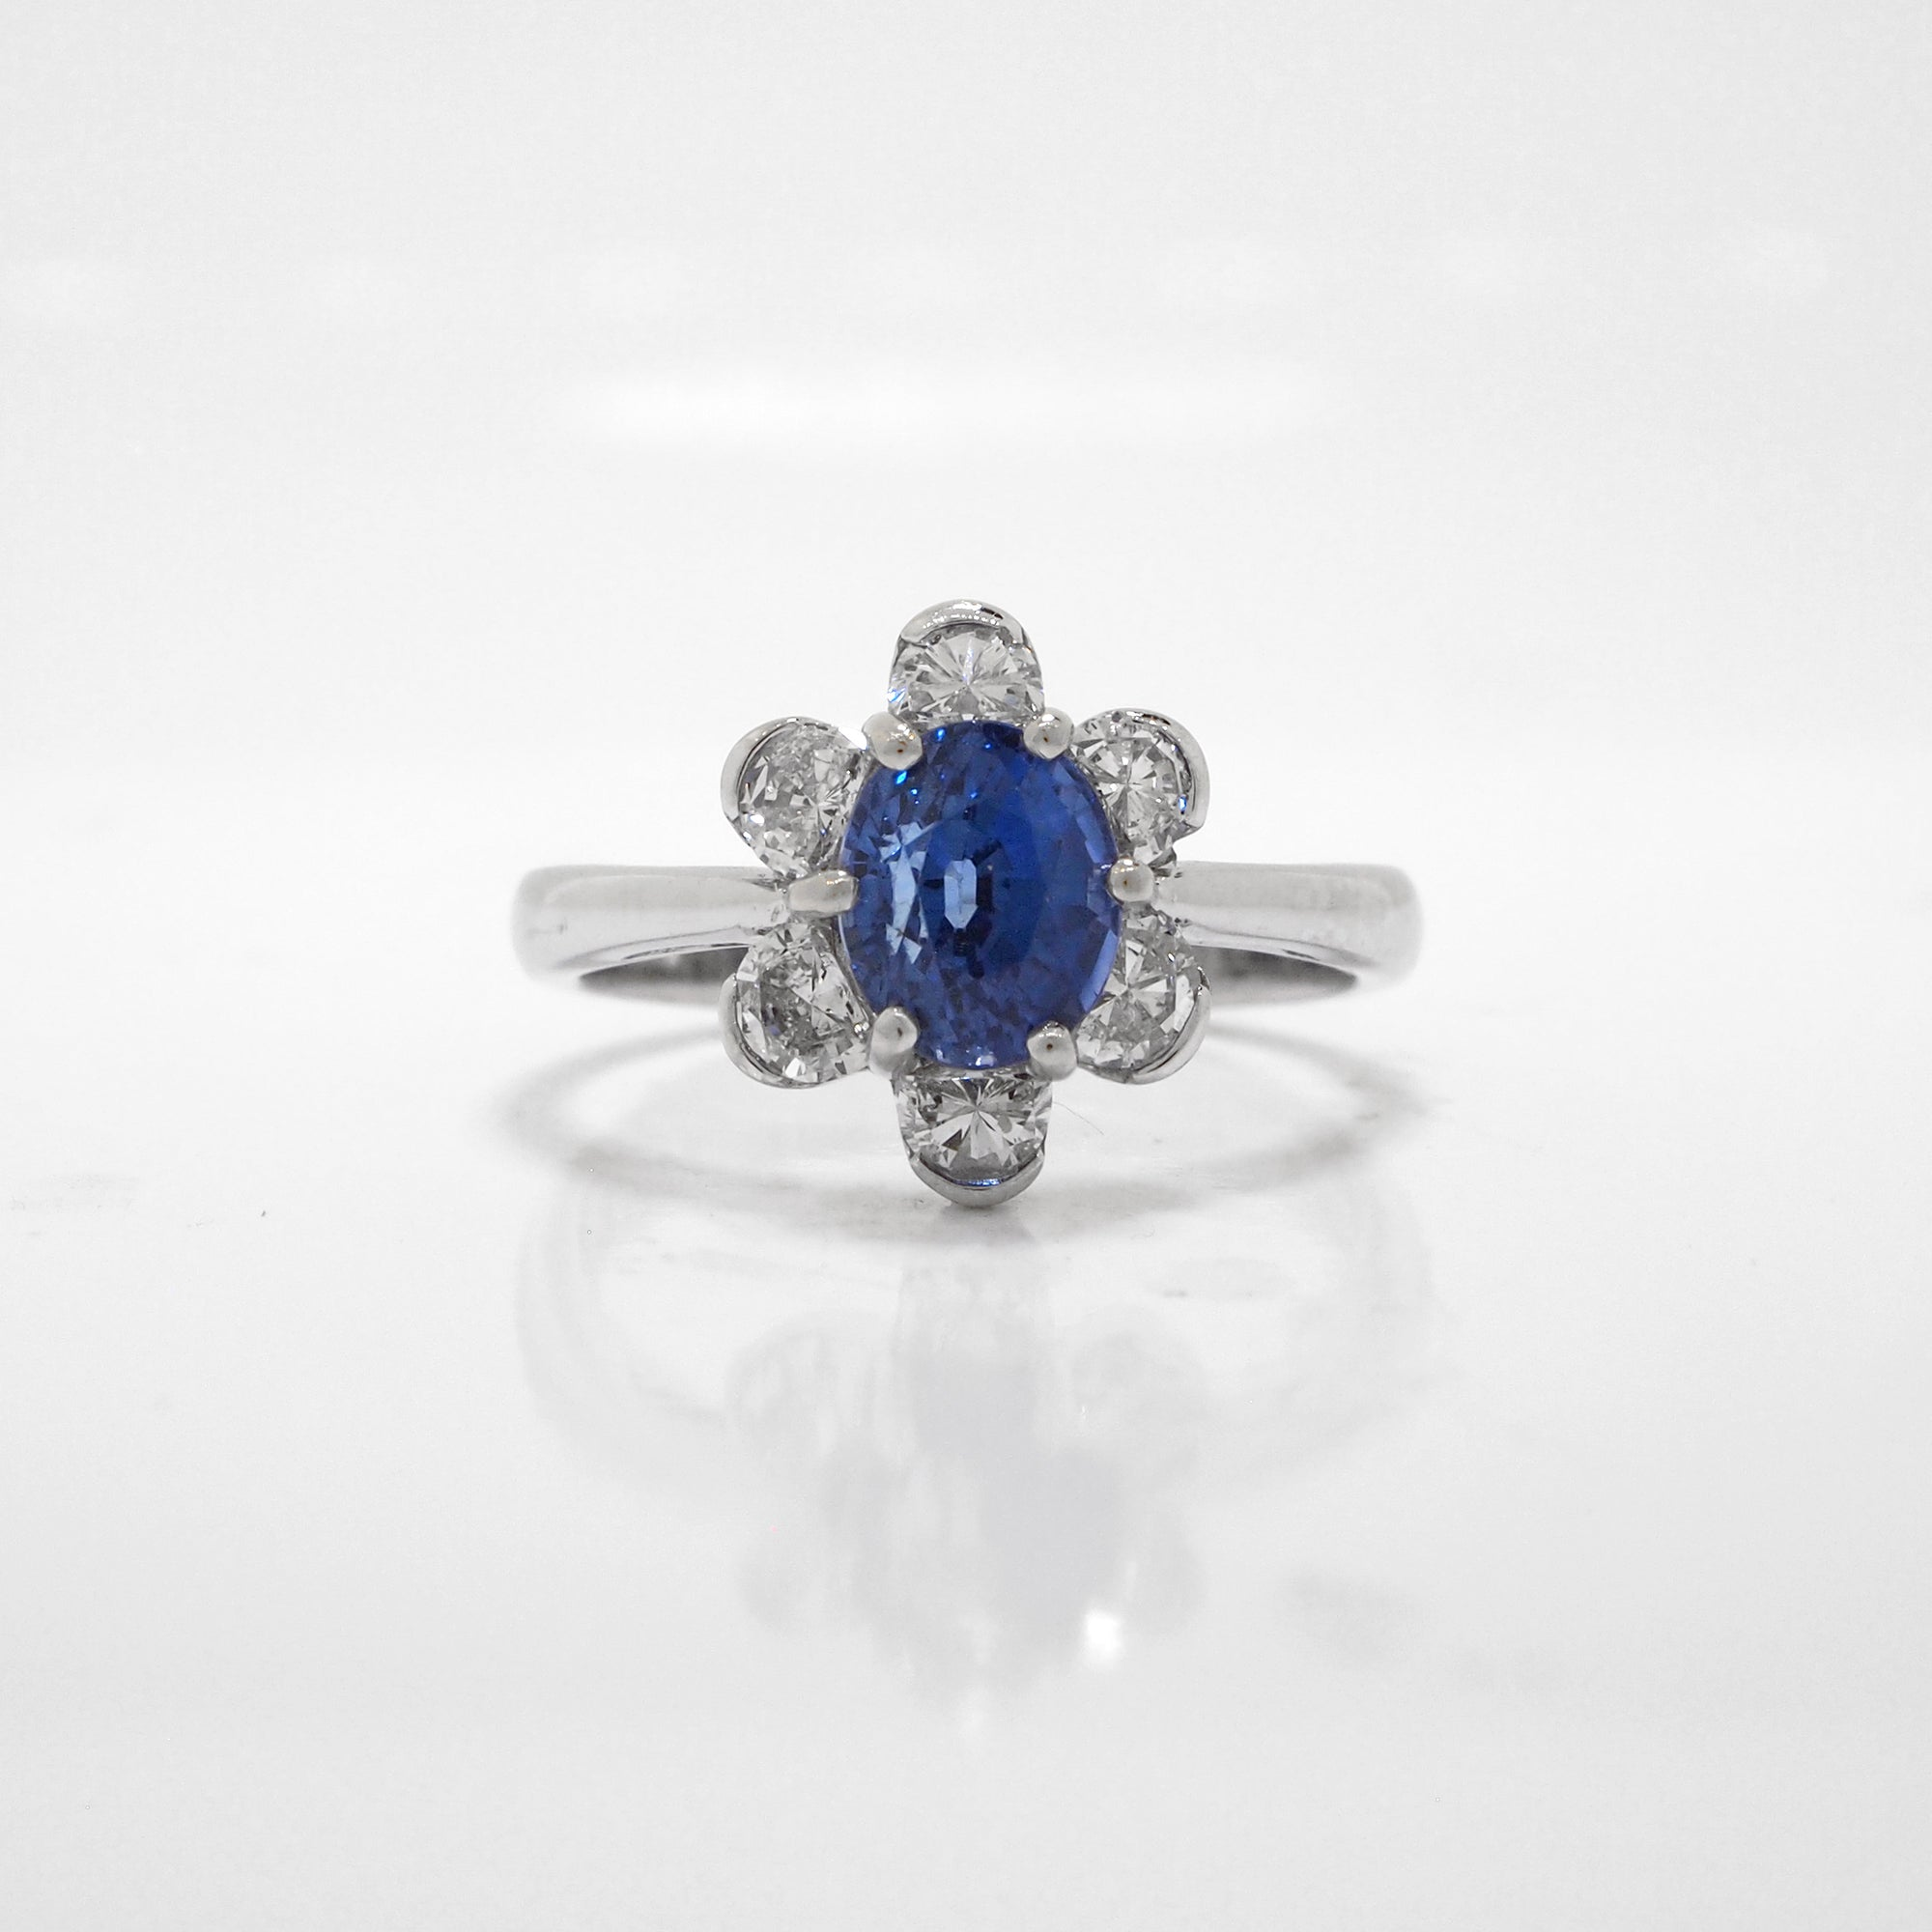 18K white gold sapphire and diamond ring featuring one 1.70 carat oval blue sapphire, and a 6 diamond halo with diamonds weighing a total of 0.56 carats.